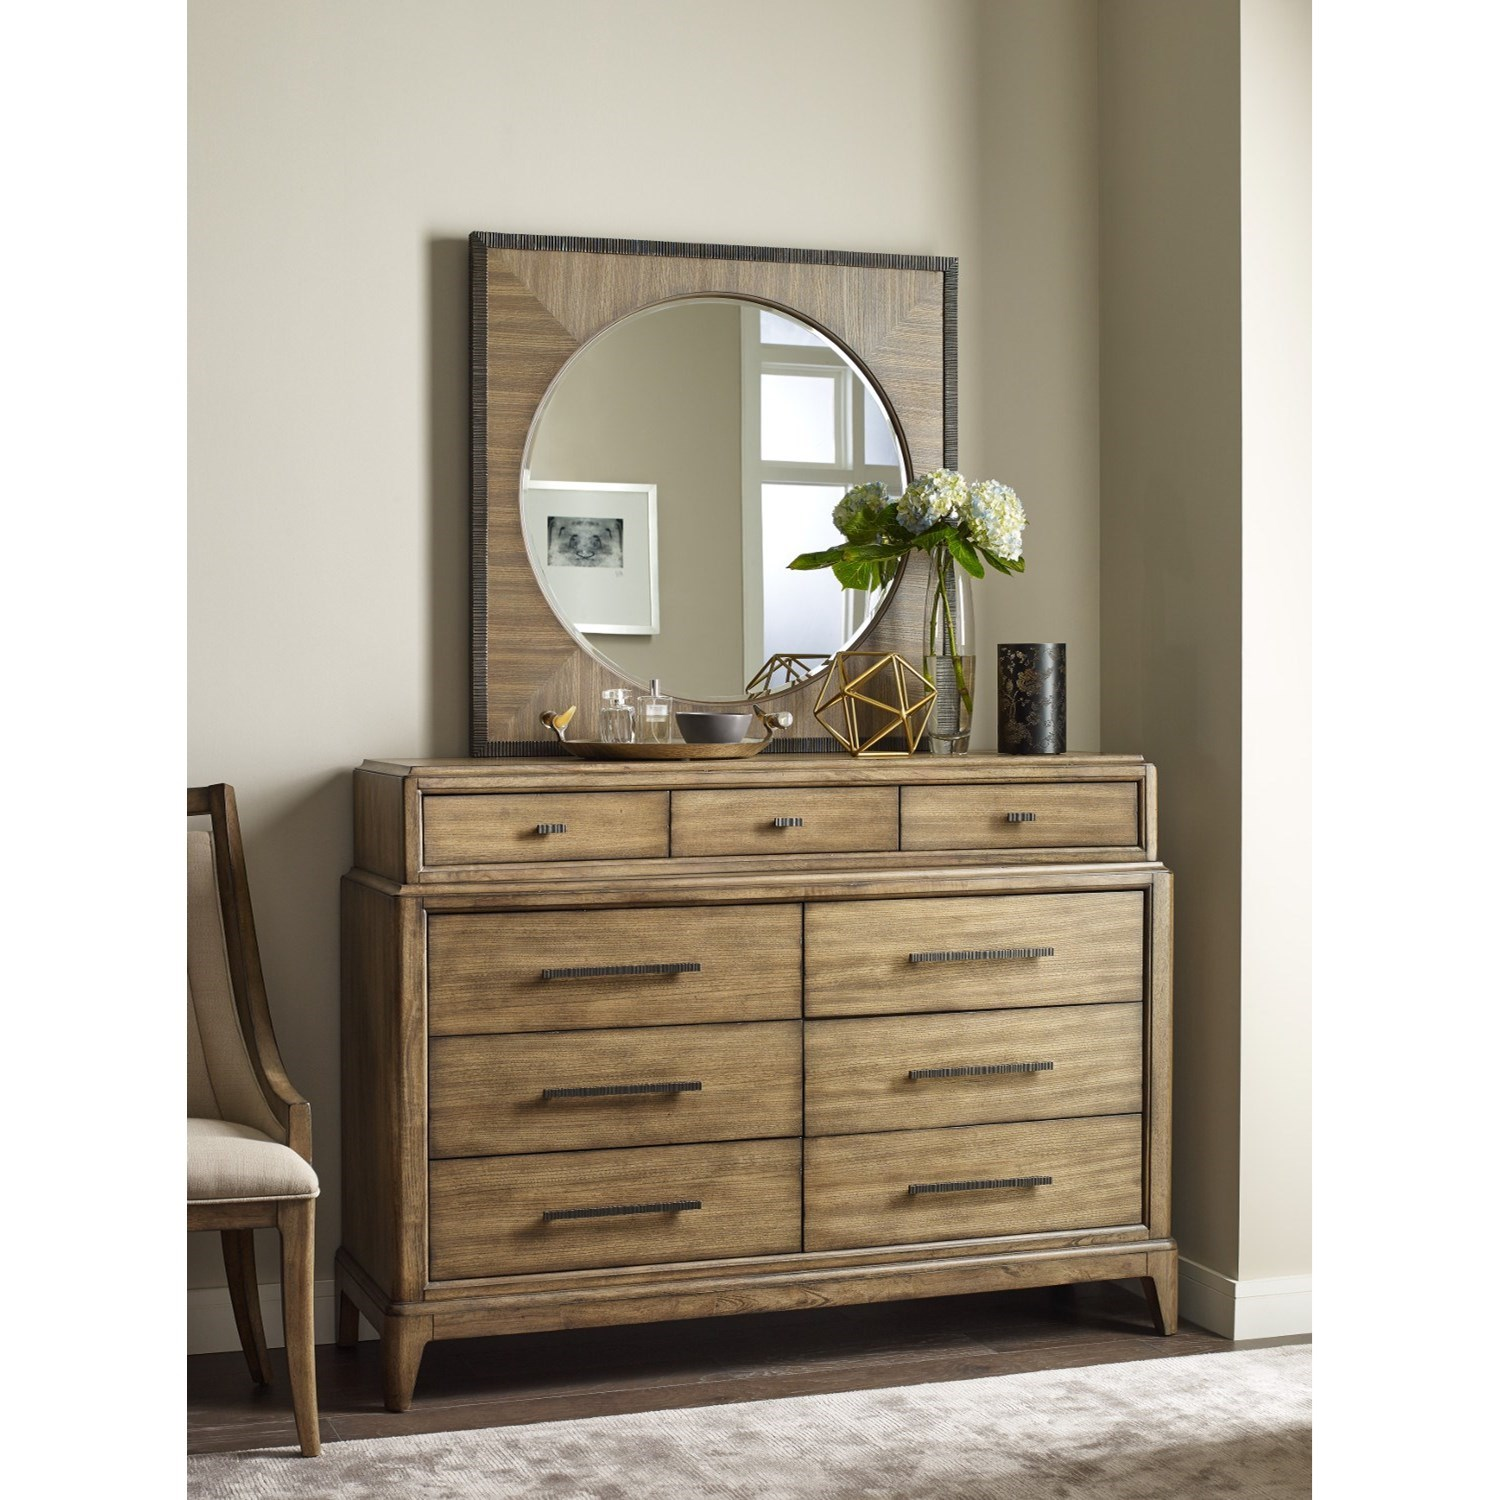 American Drew EVOKE  Bureau and Round Mirror with Square Frame - Item Number: 509-131+020